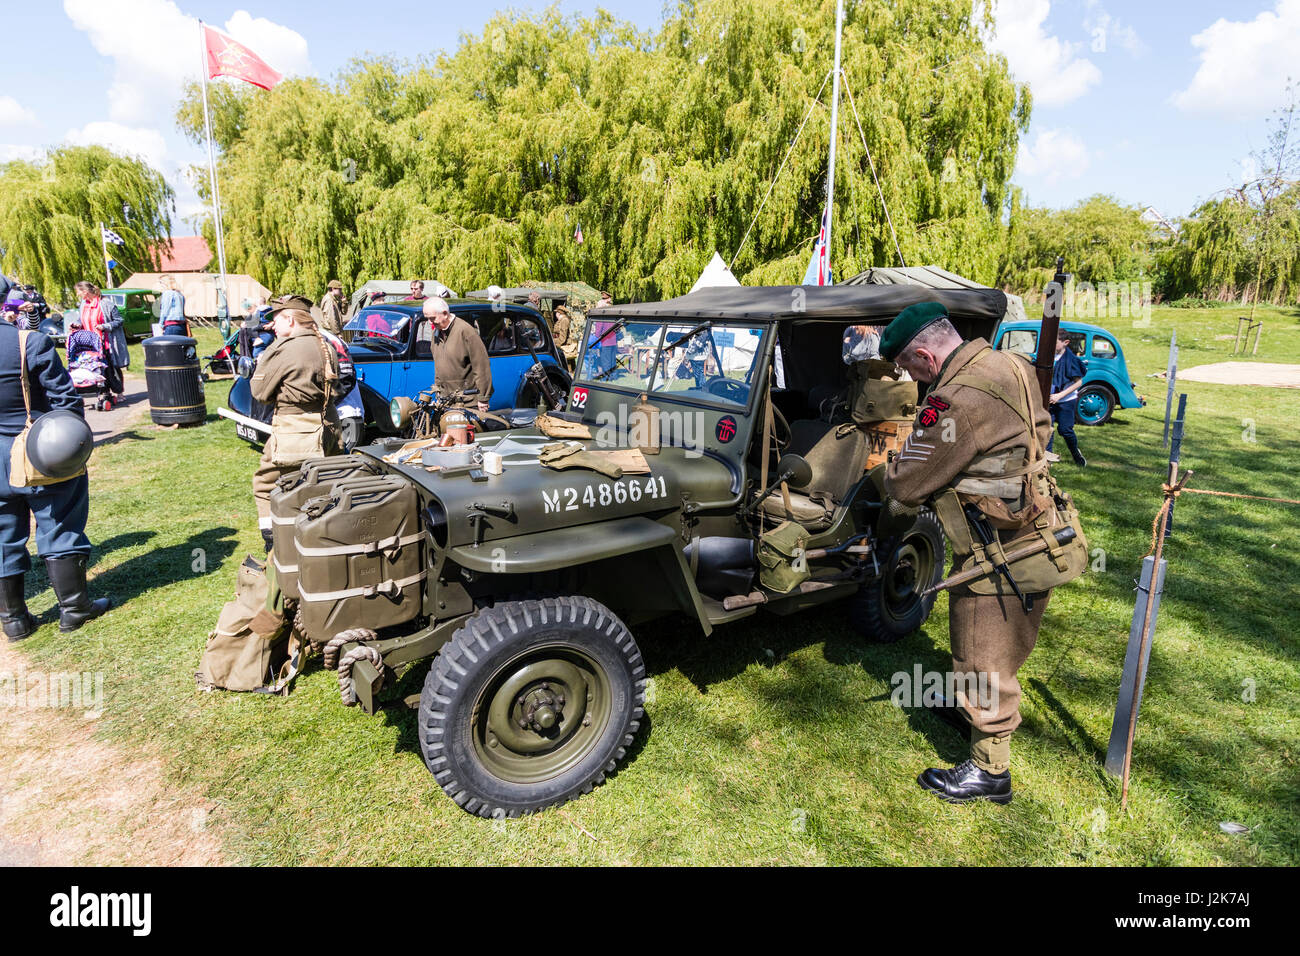 Salute to the 40s re-enactment event. Various vehicles, tents and displays on grass area with people wandering around - Stock Image